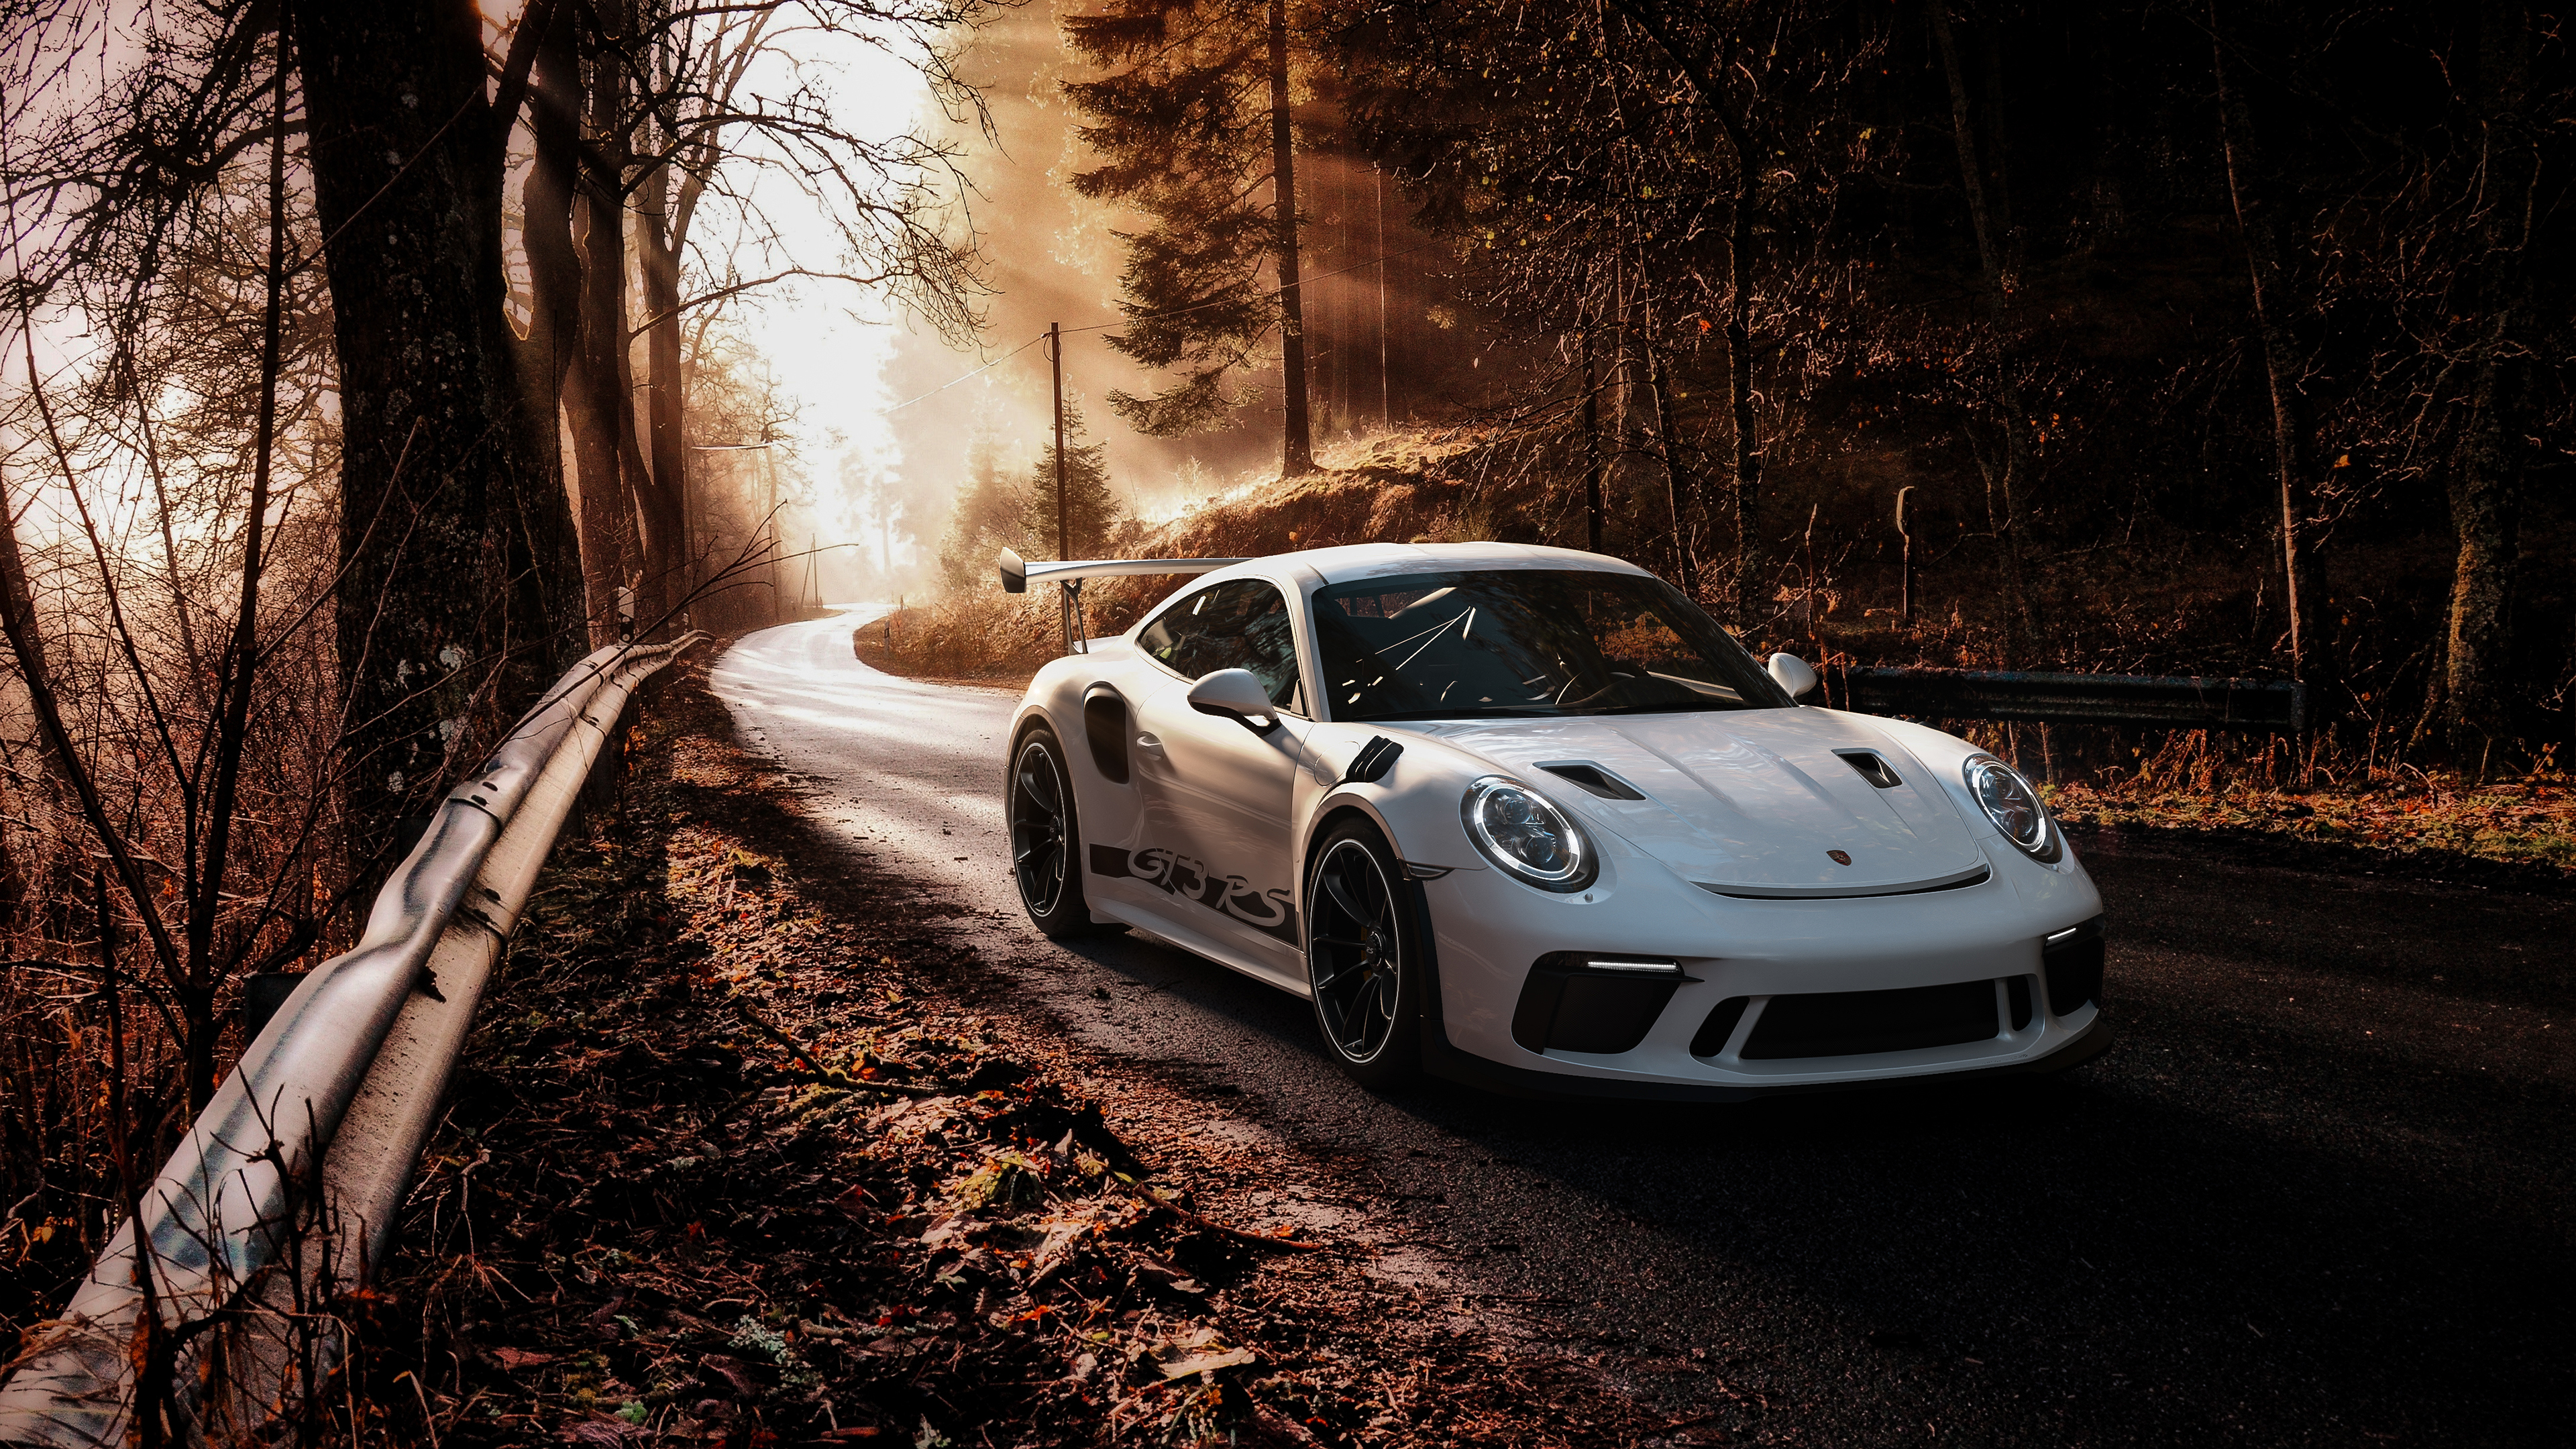 porsche 911 gt3 rs 2019 cgi 4k 1546362638 - Porsche 911 GT3 RS 2019 CGI 4k - porsche wallpapers, porsche 911 wallpapers, porsche 911 gt3 r wallpapers, hd-wallpapers, cars wallpapers, behance wallpapers, 4k-wallpapers, 2018 cars wallpapers